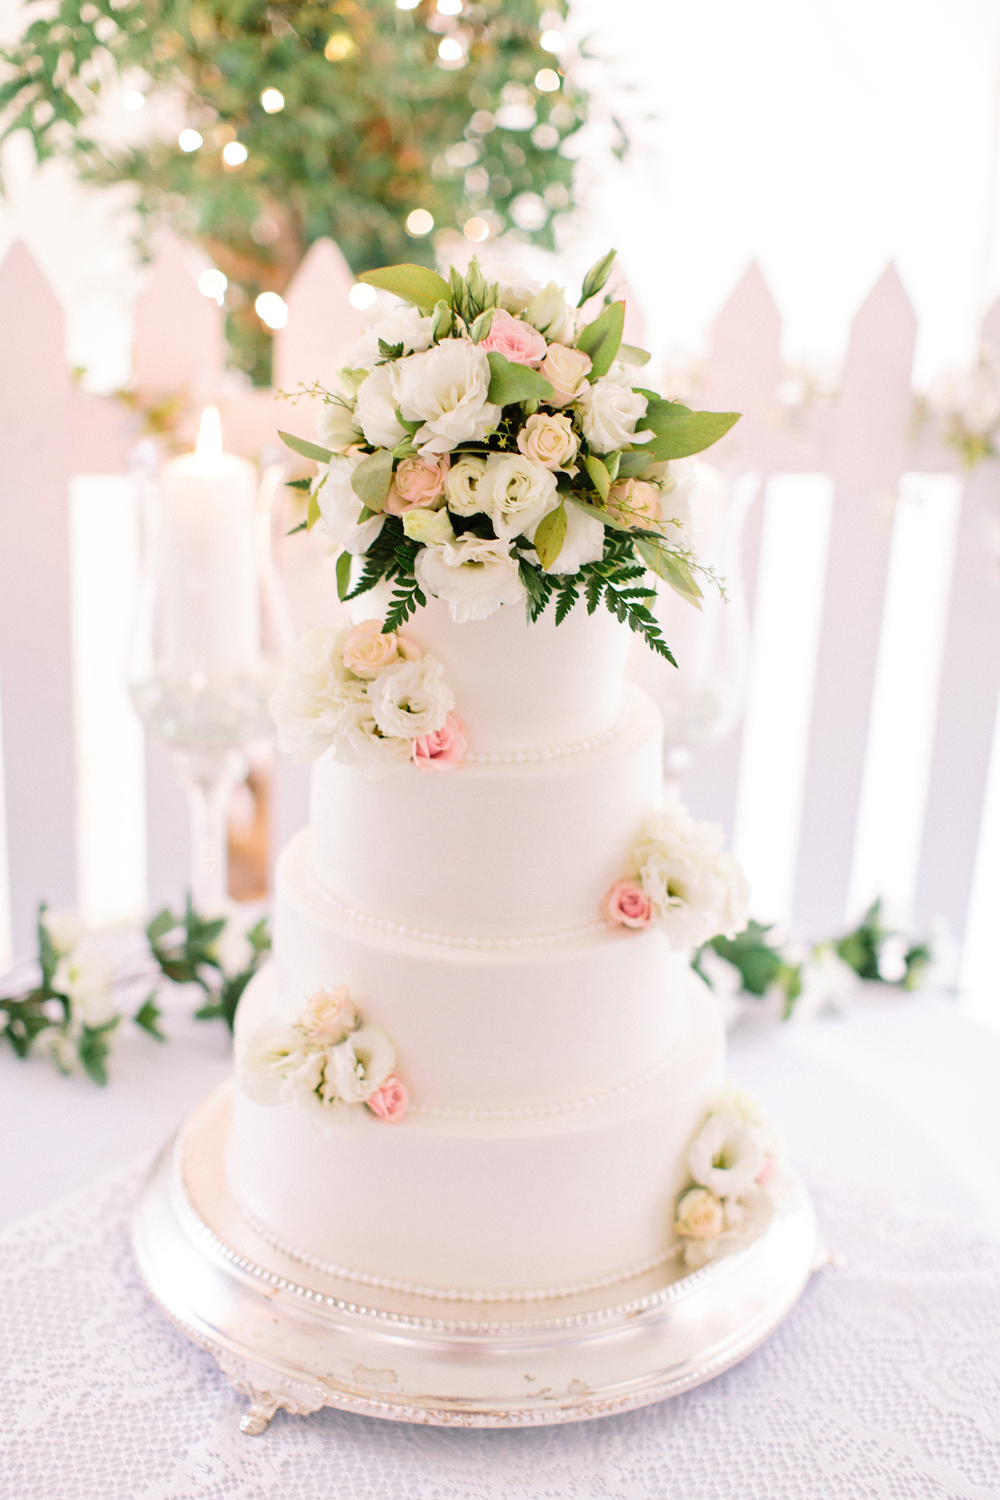 central-wisconsin-wedding-cake-bakery-designer